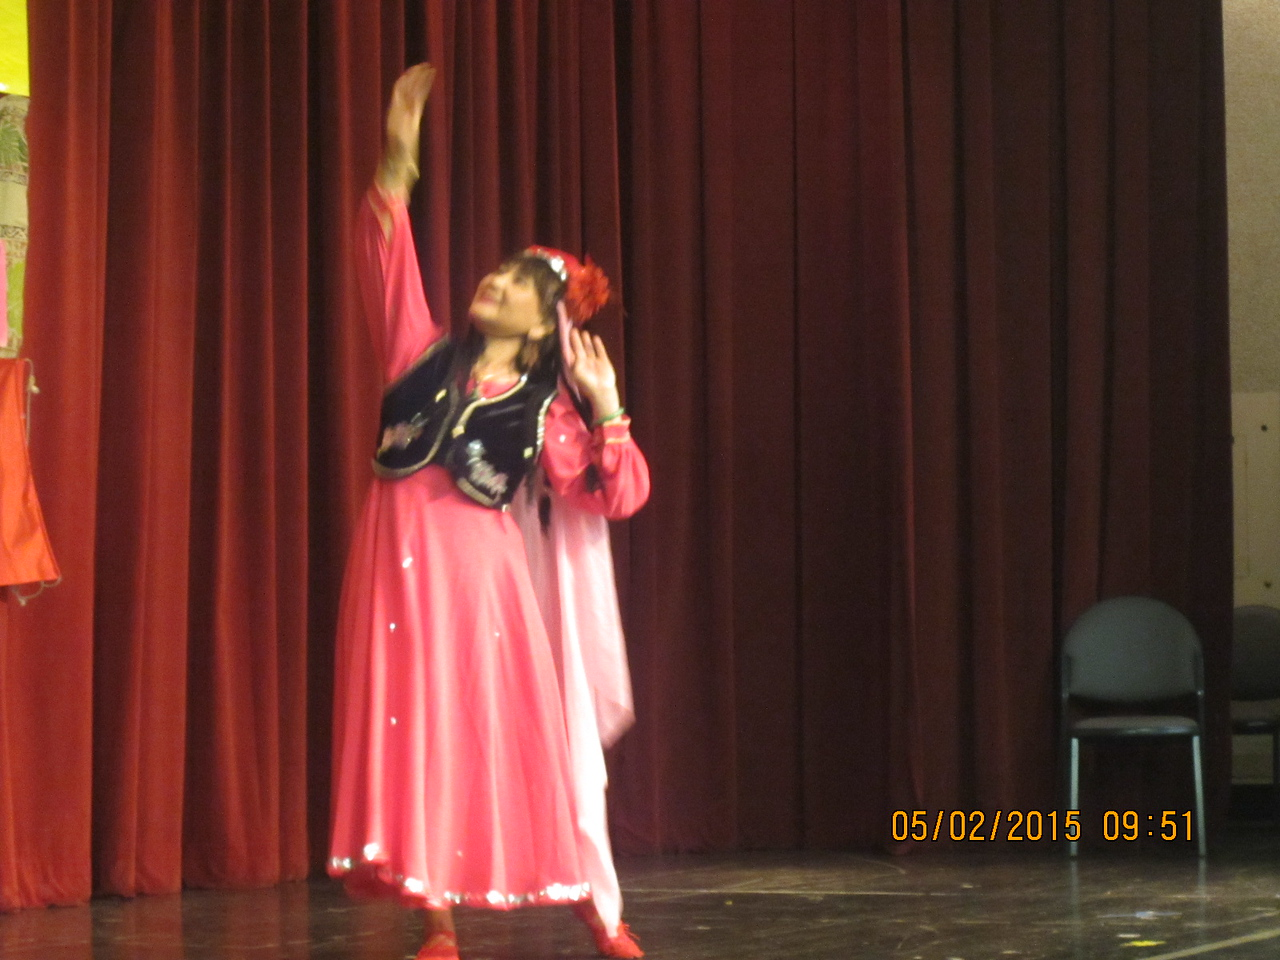 Christine did the classical Chinese dance